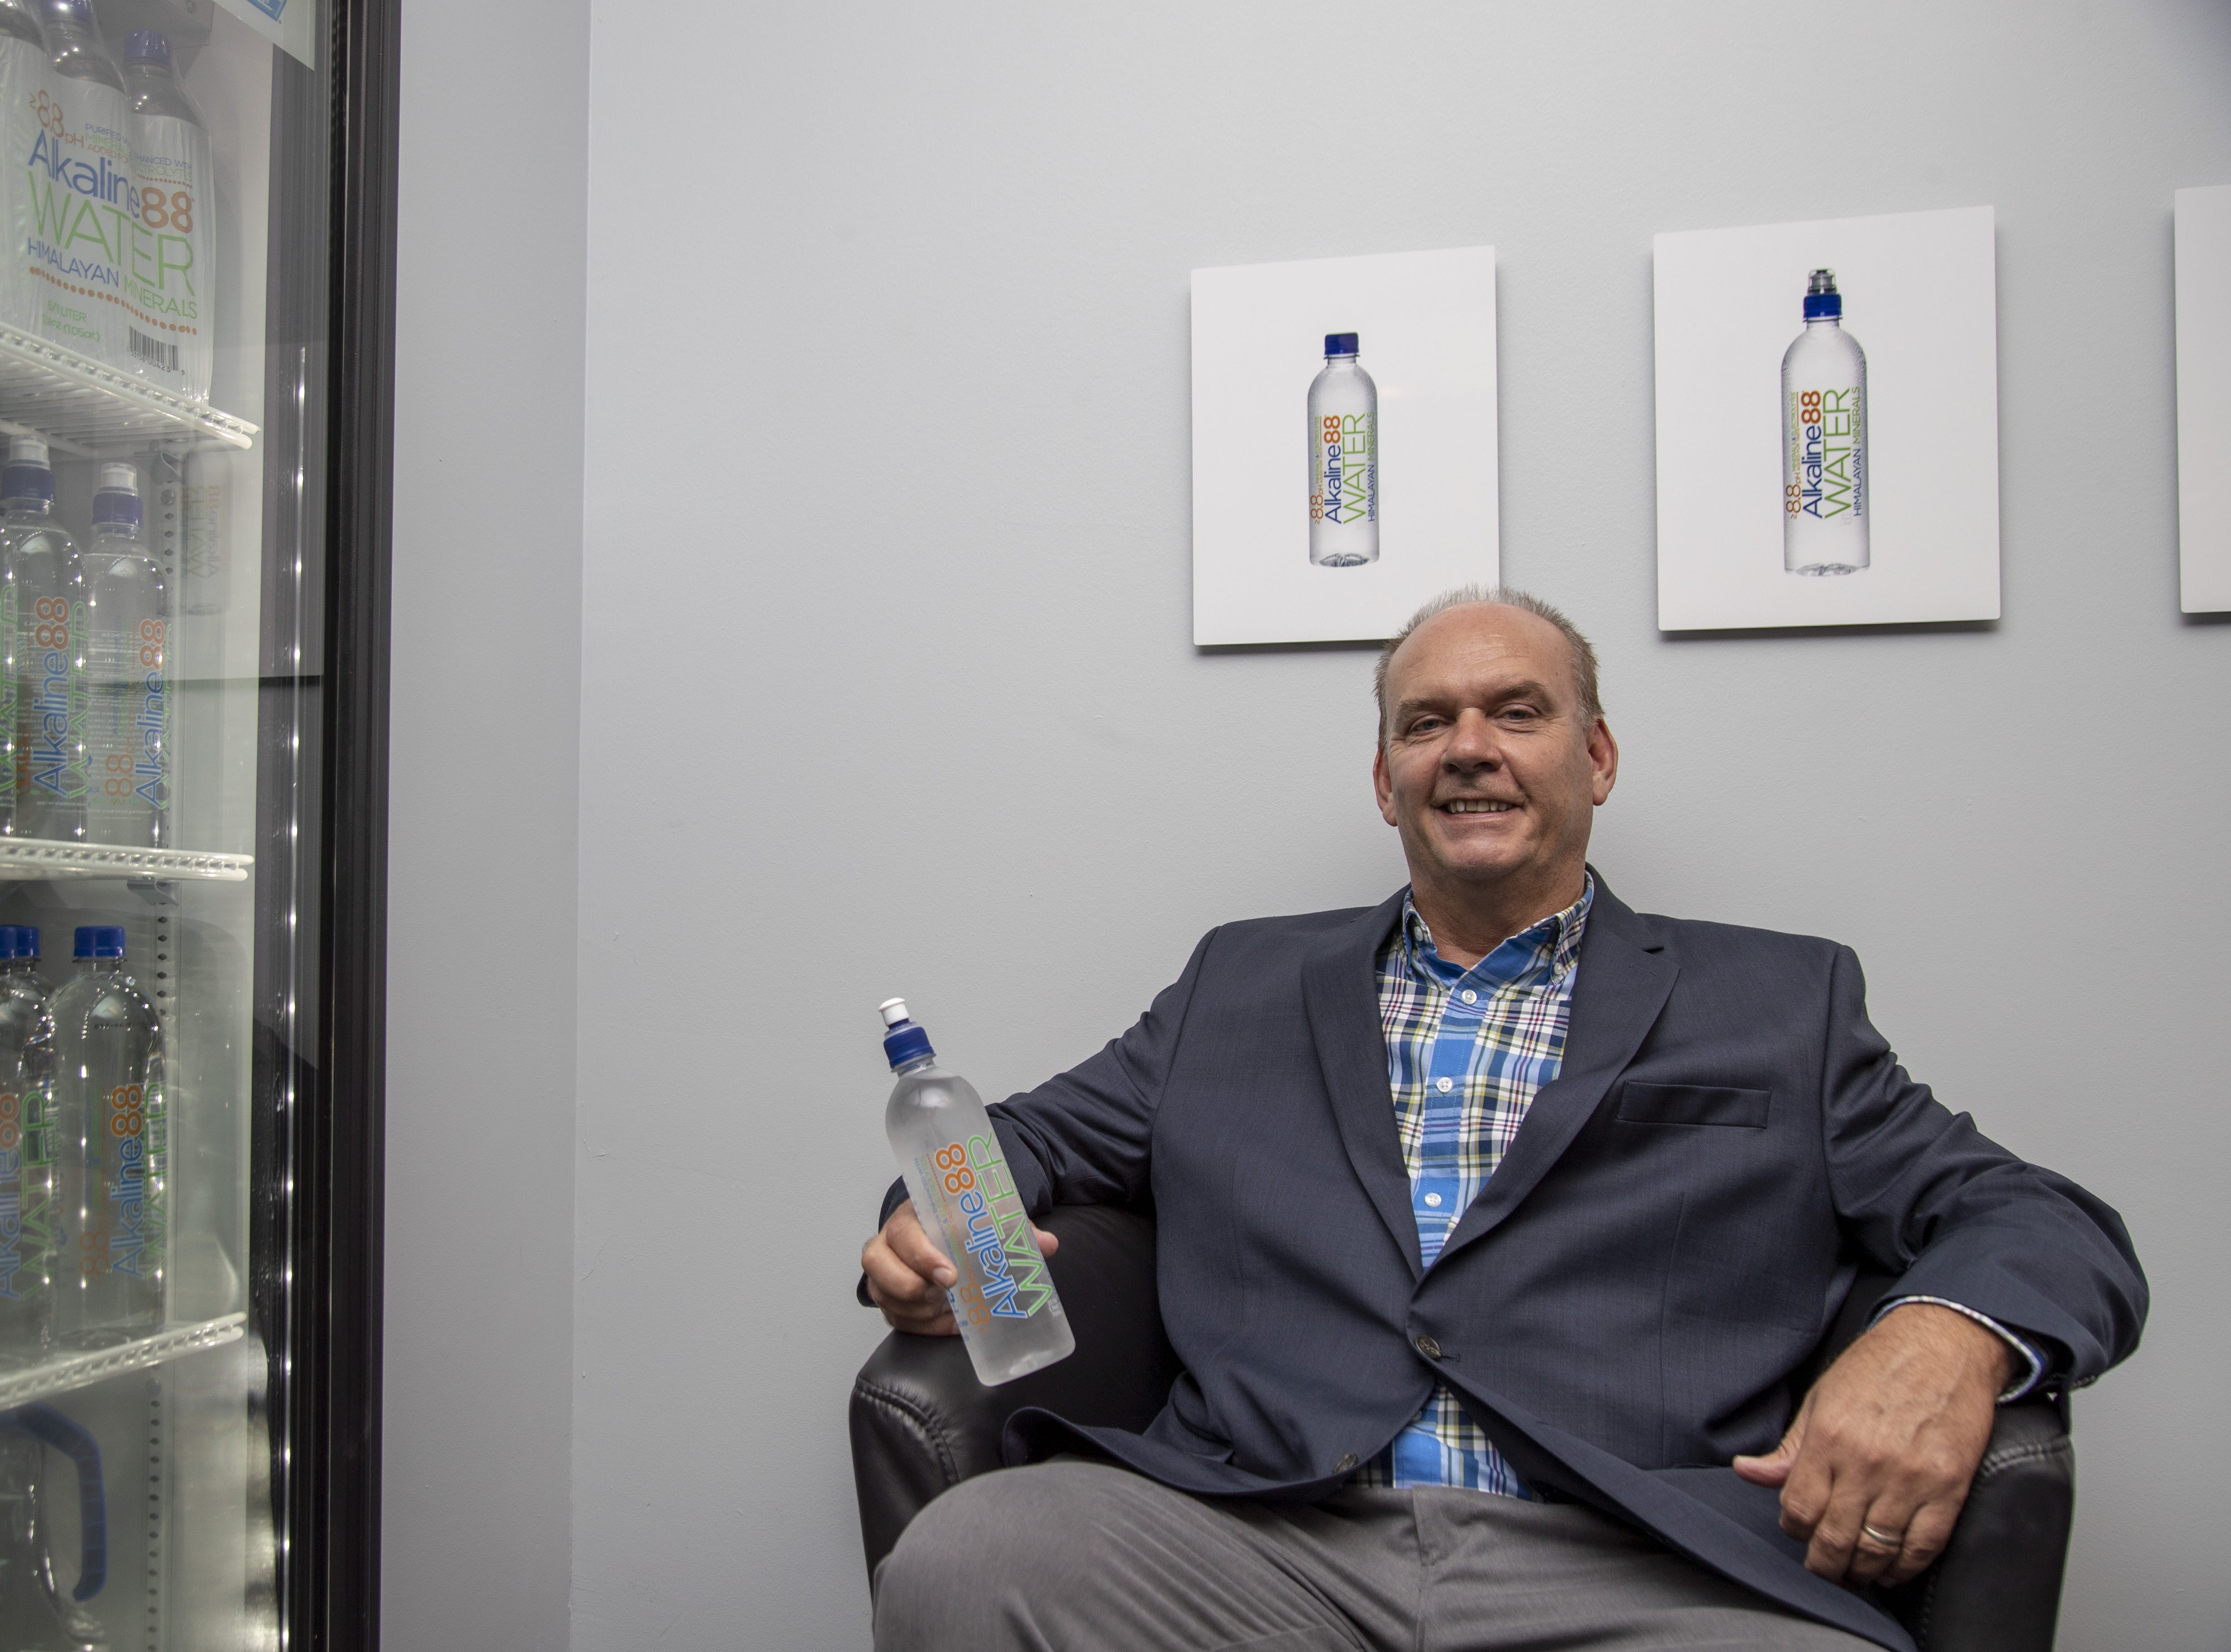 CEO Ricky Wright launched The Alkaline Water Co. in 2012.